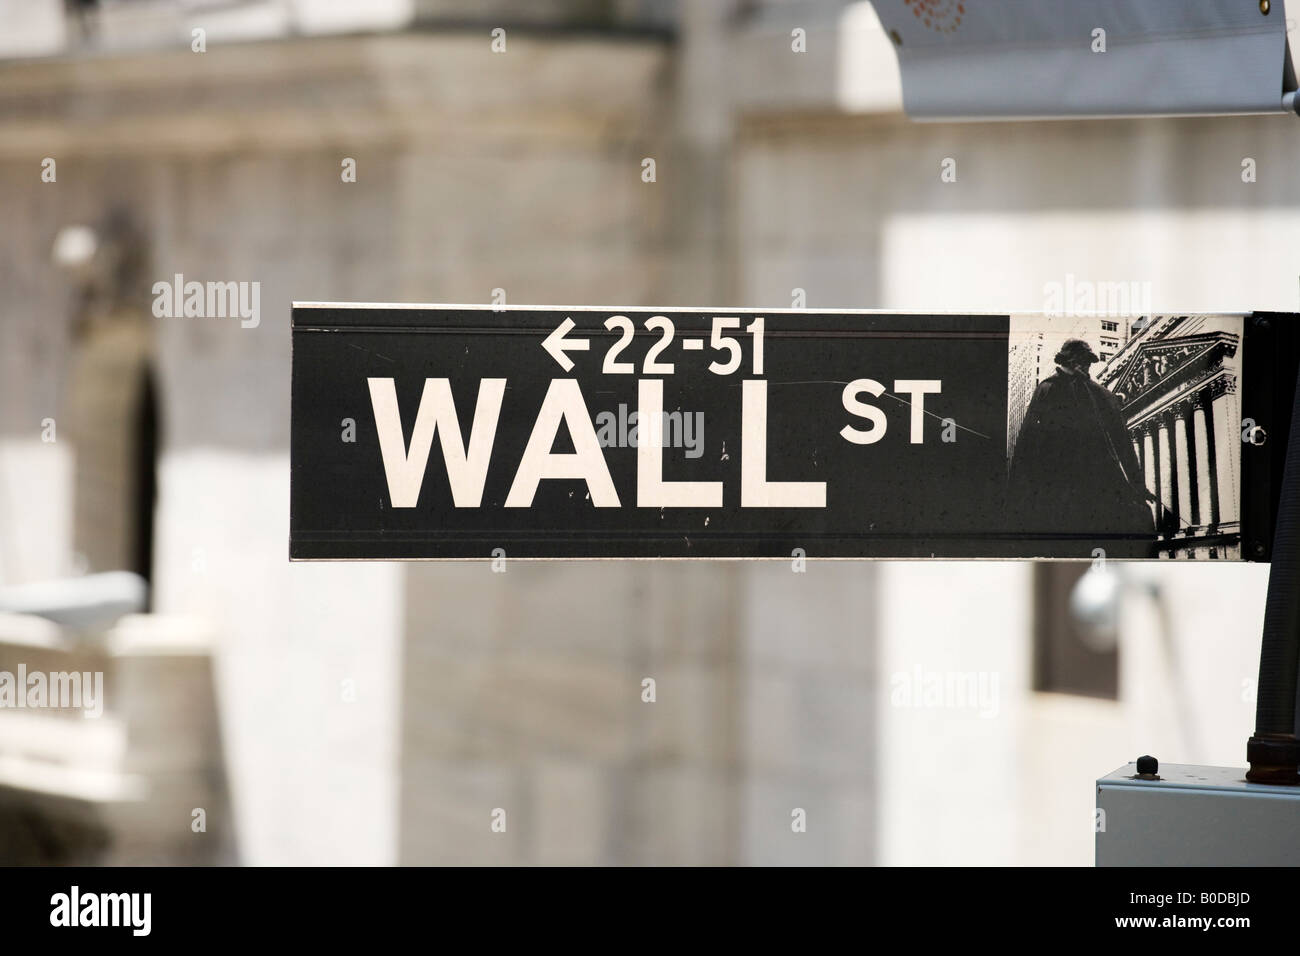 Wall Street signe devant le New York Stock Exchange (NYSE), Wall Street, Financial District, NYC, New York City Photo Stock